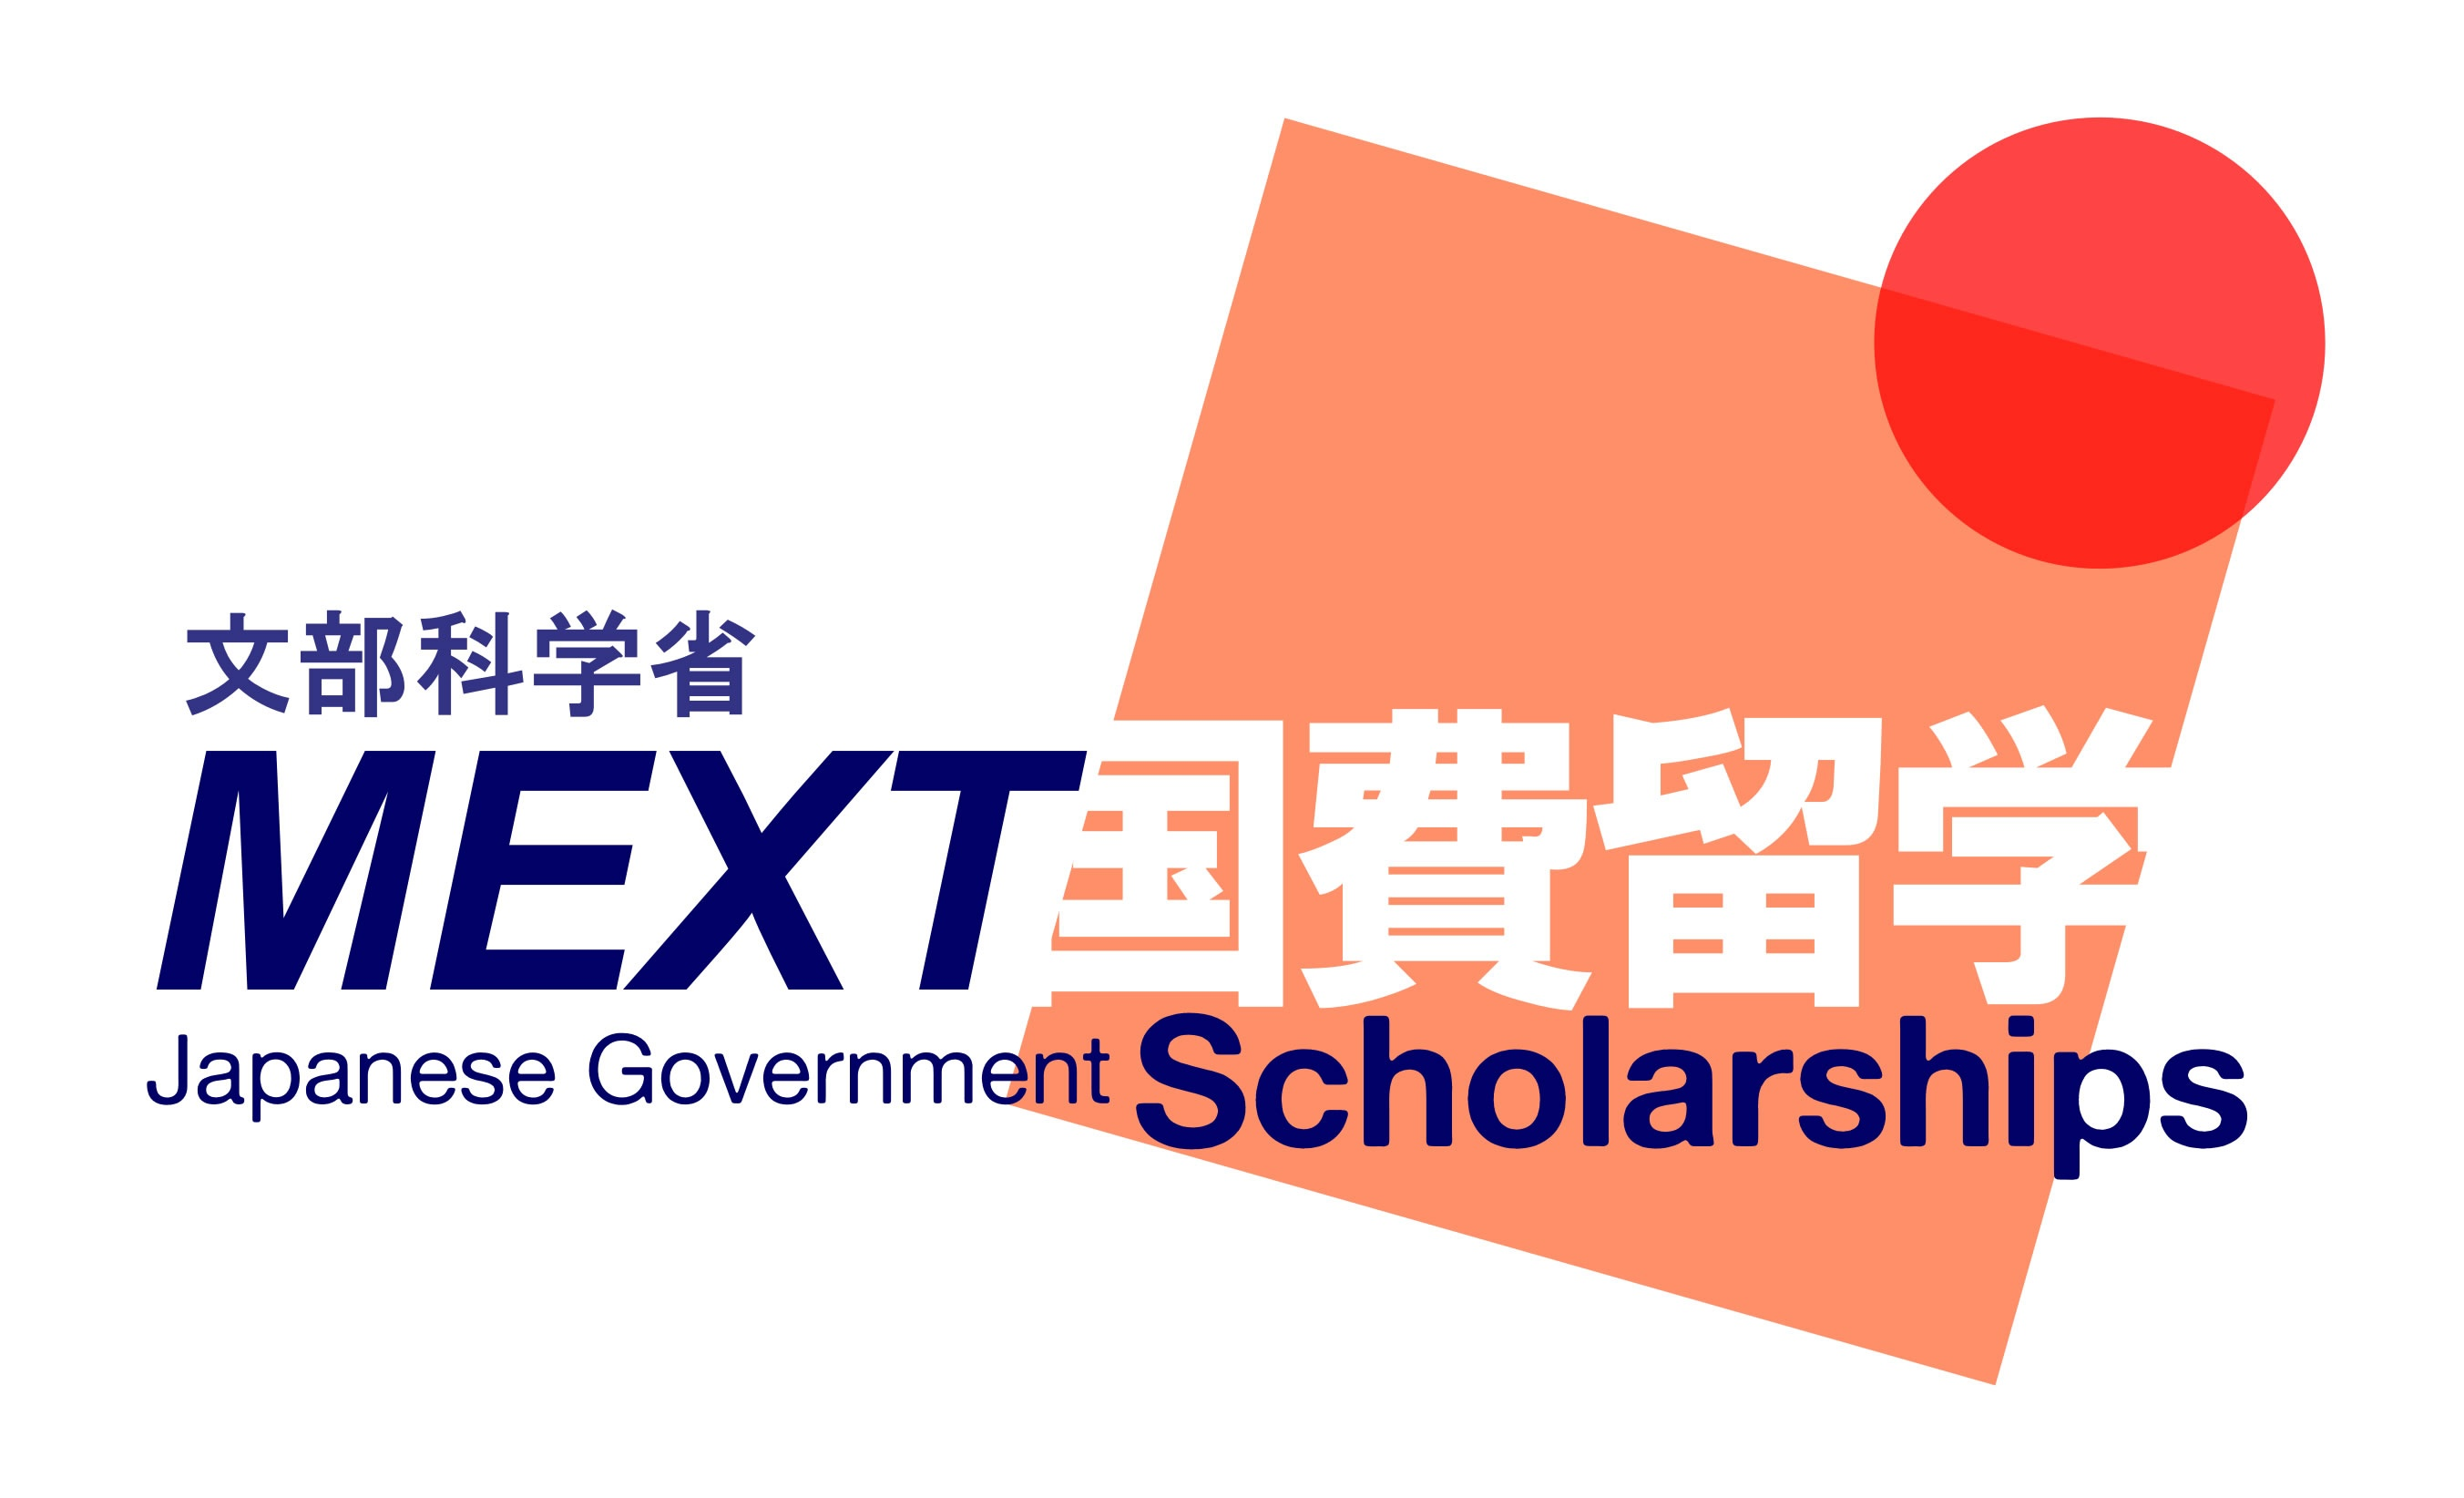 Japanese Government [MEXT] Scholarship Program 2018 for Studying in Japan [Upto Rs. 69,000/month + Airfare]: Apply by June 16